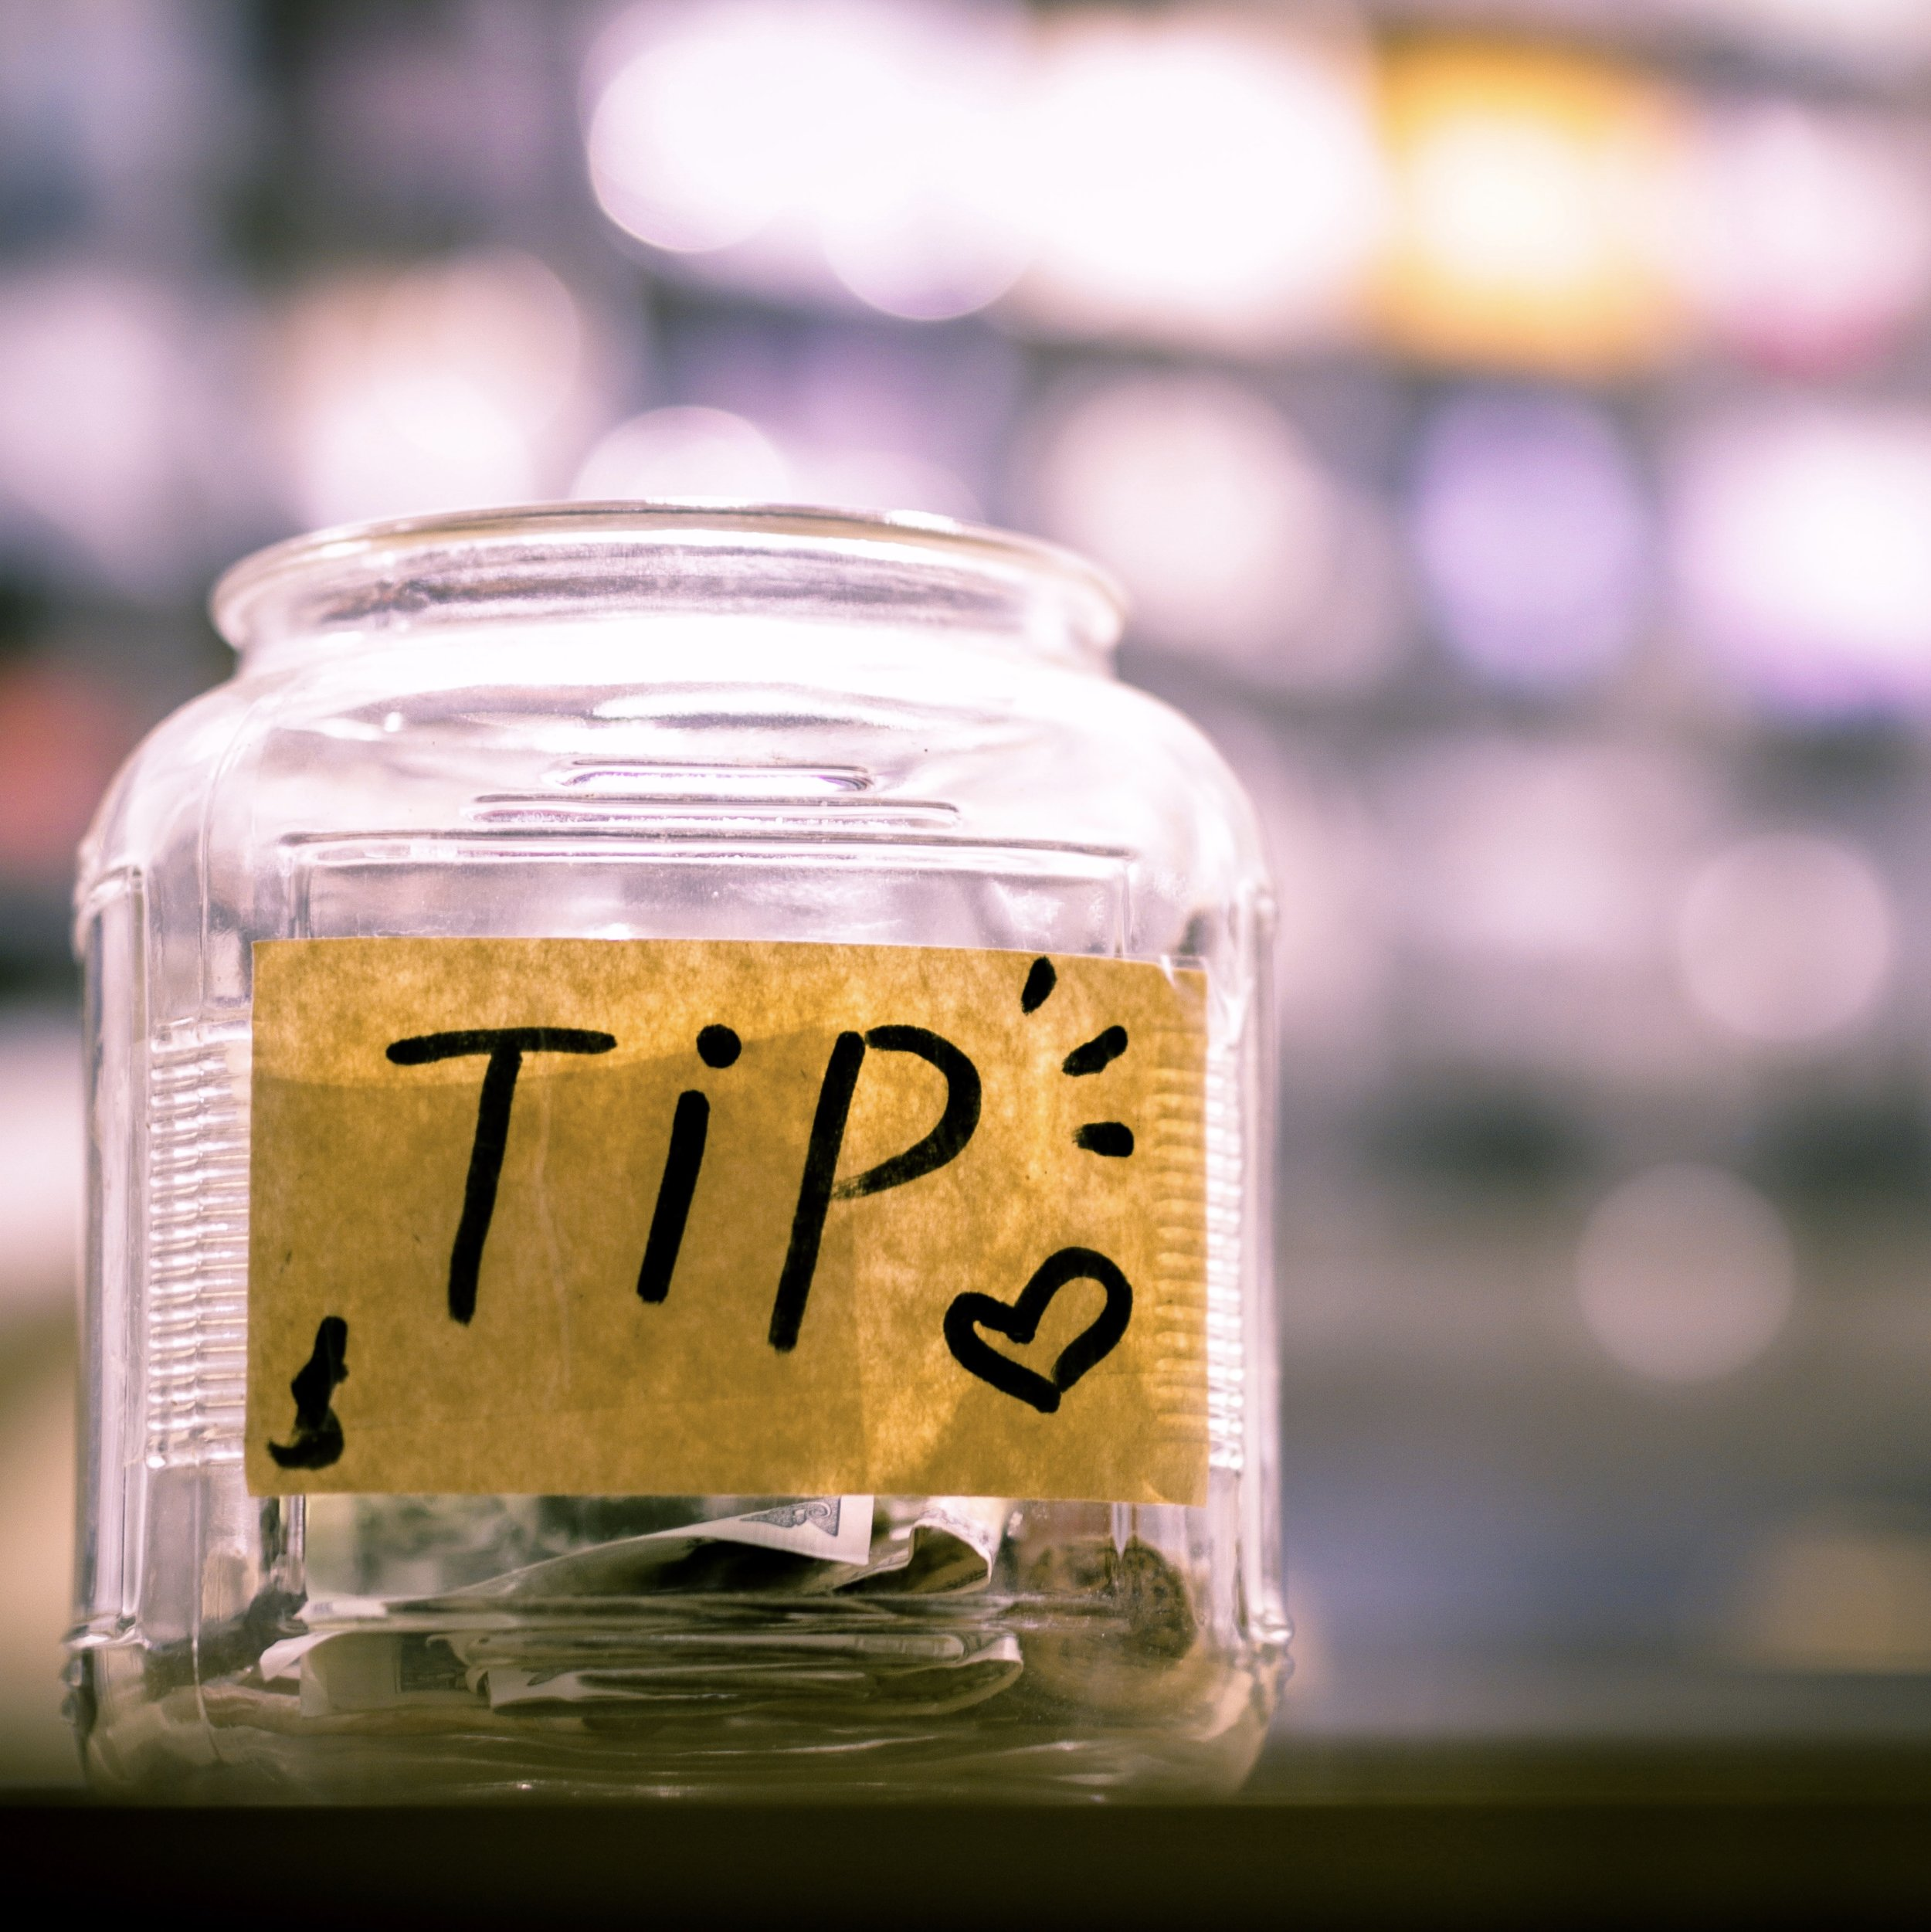 Express Gratitude - If you've received some value from the Connection Counselor or enjoyed an article, podcast, or course and would like to share a token of your appreciation, click the Tip Jar photo or the THANKS button to leave a small tip.